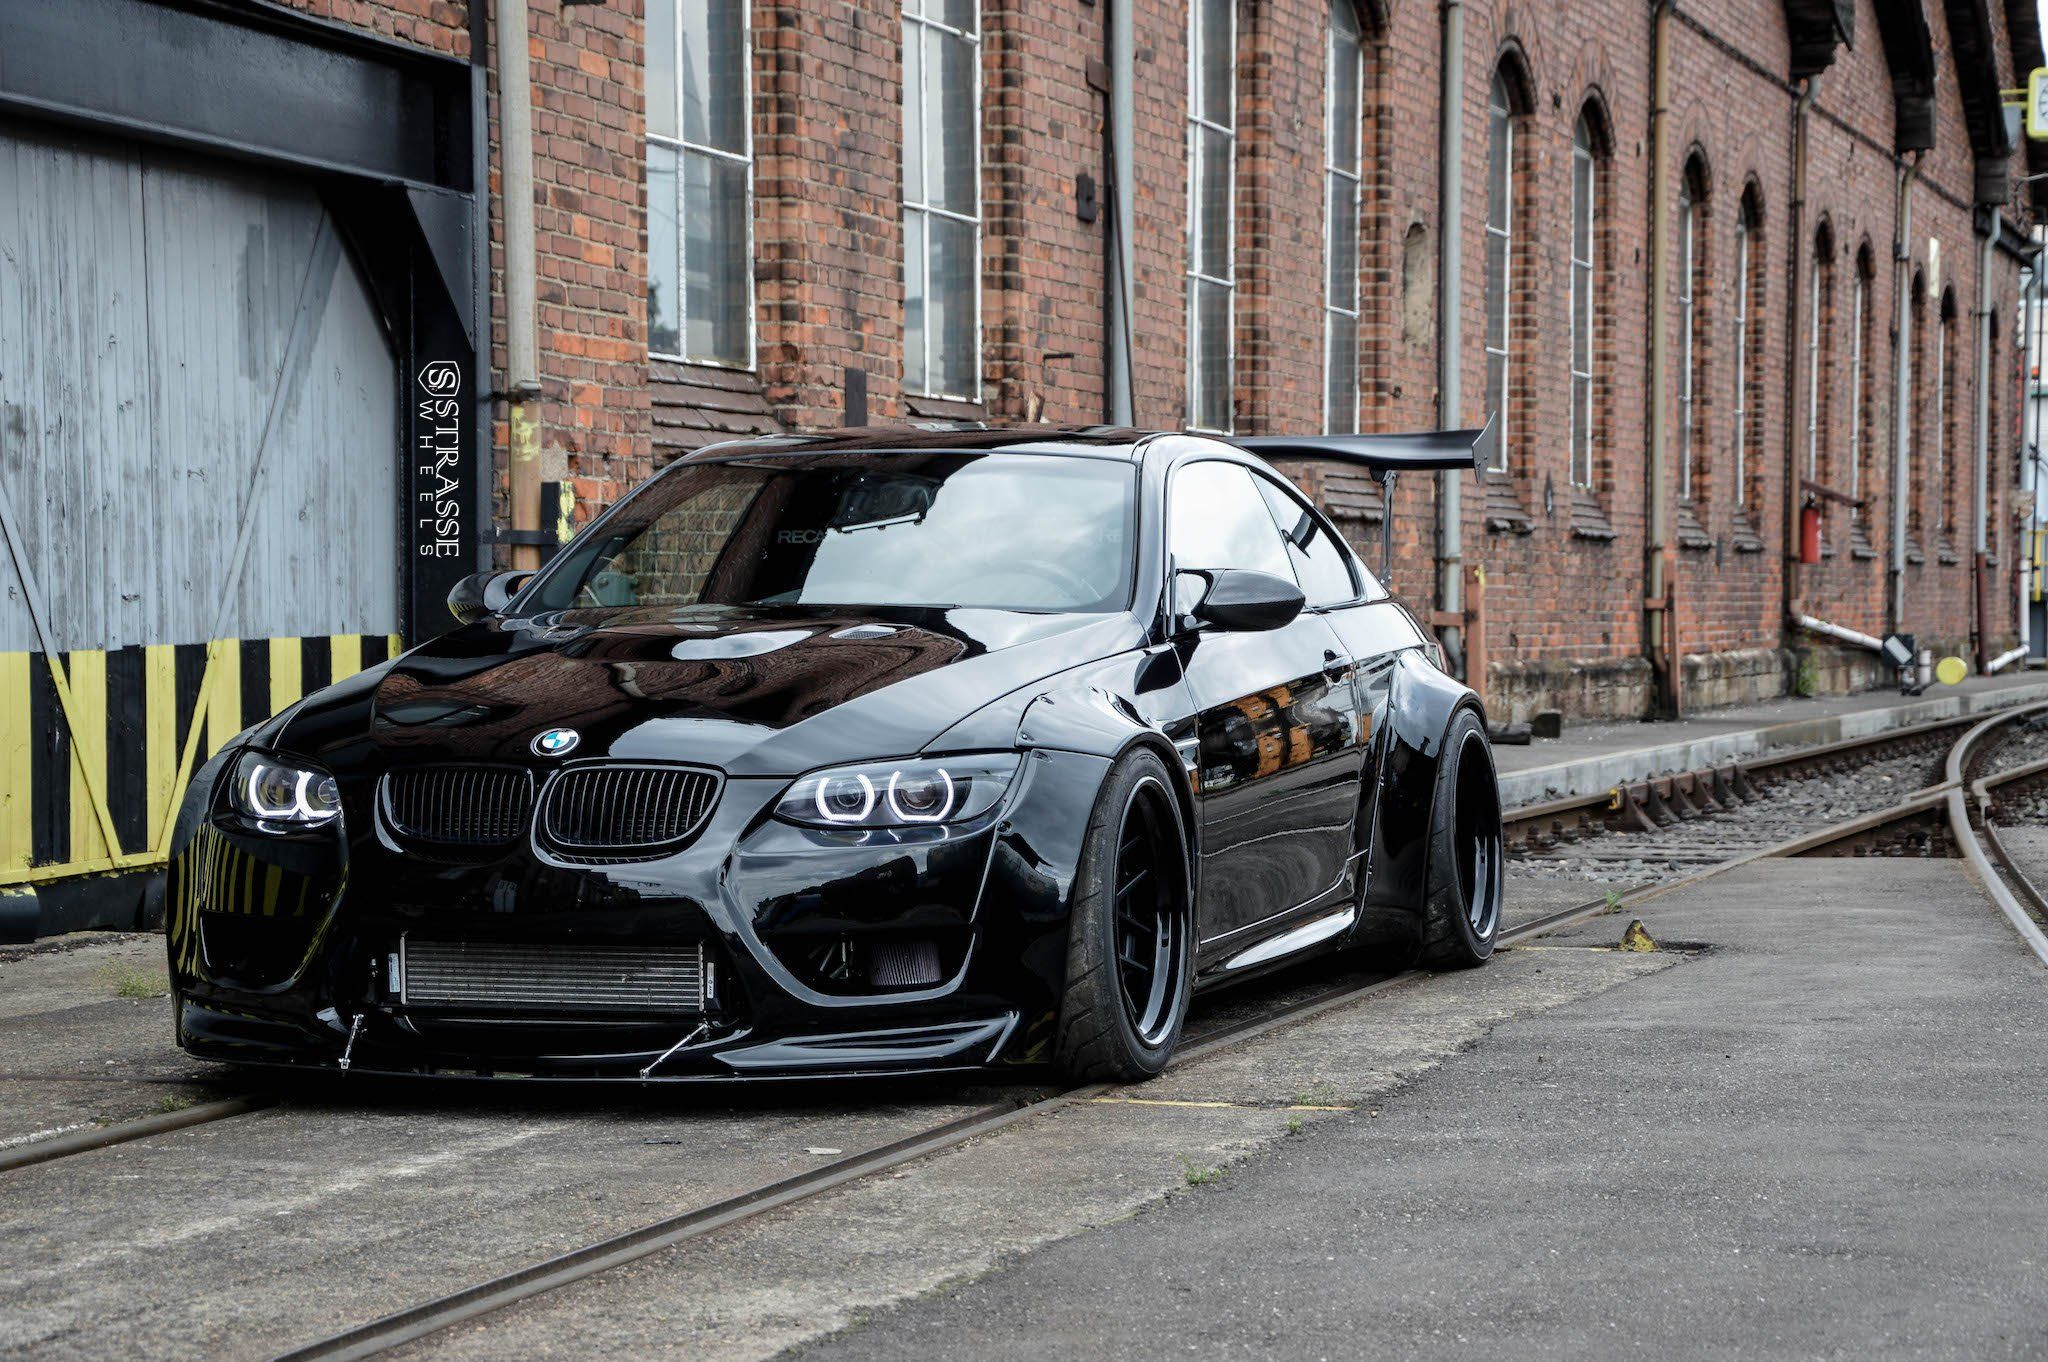 Mean All Black Bmw 3 Series Customized In Batman Style With